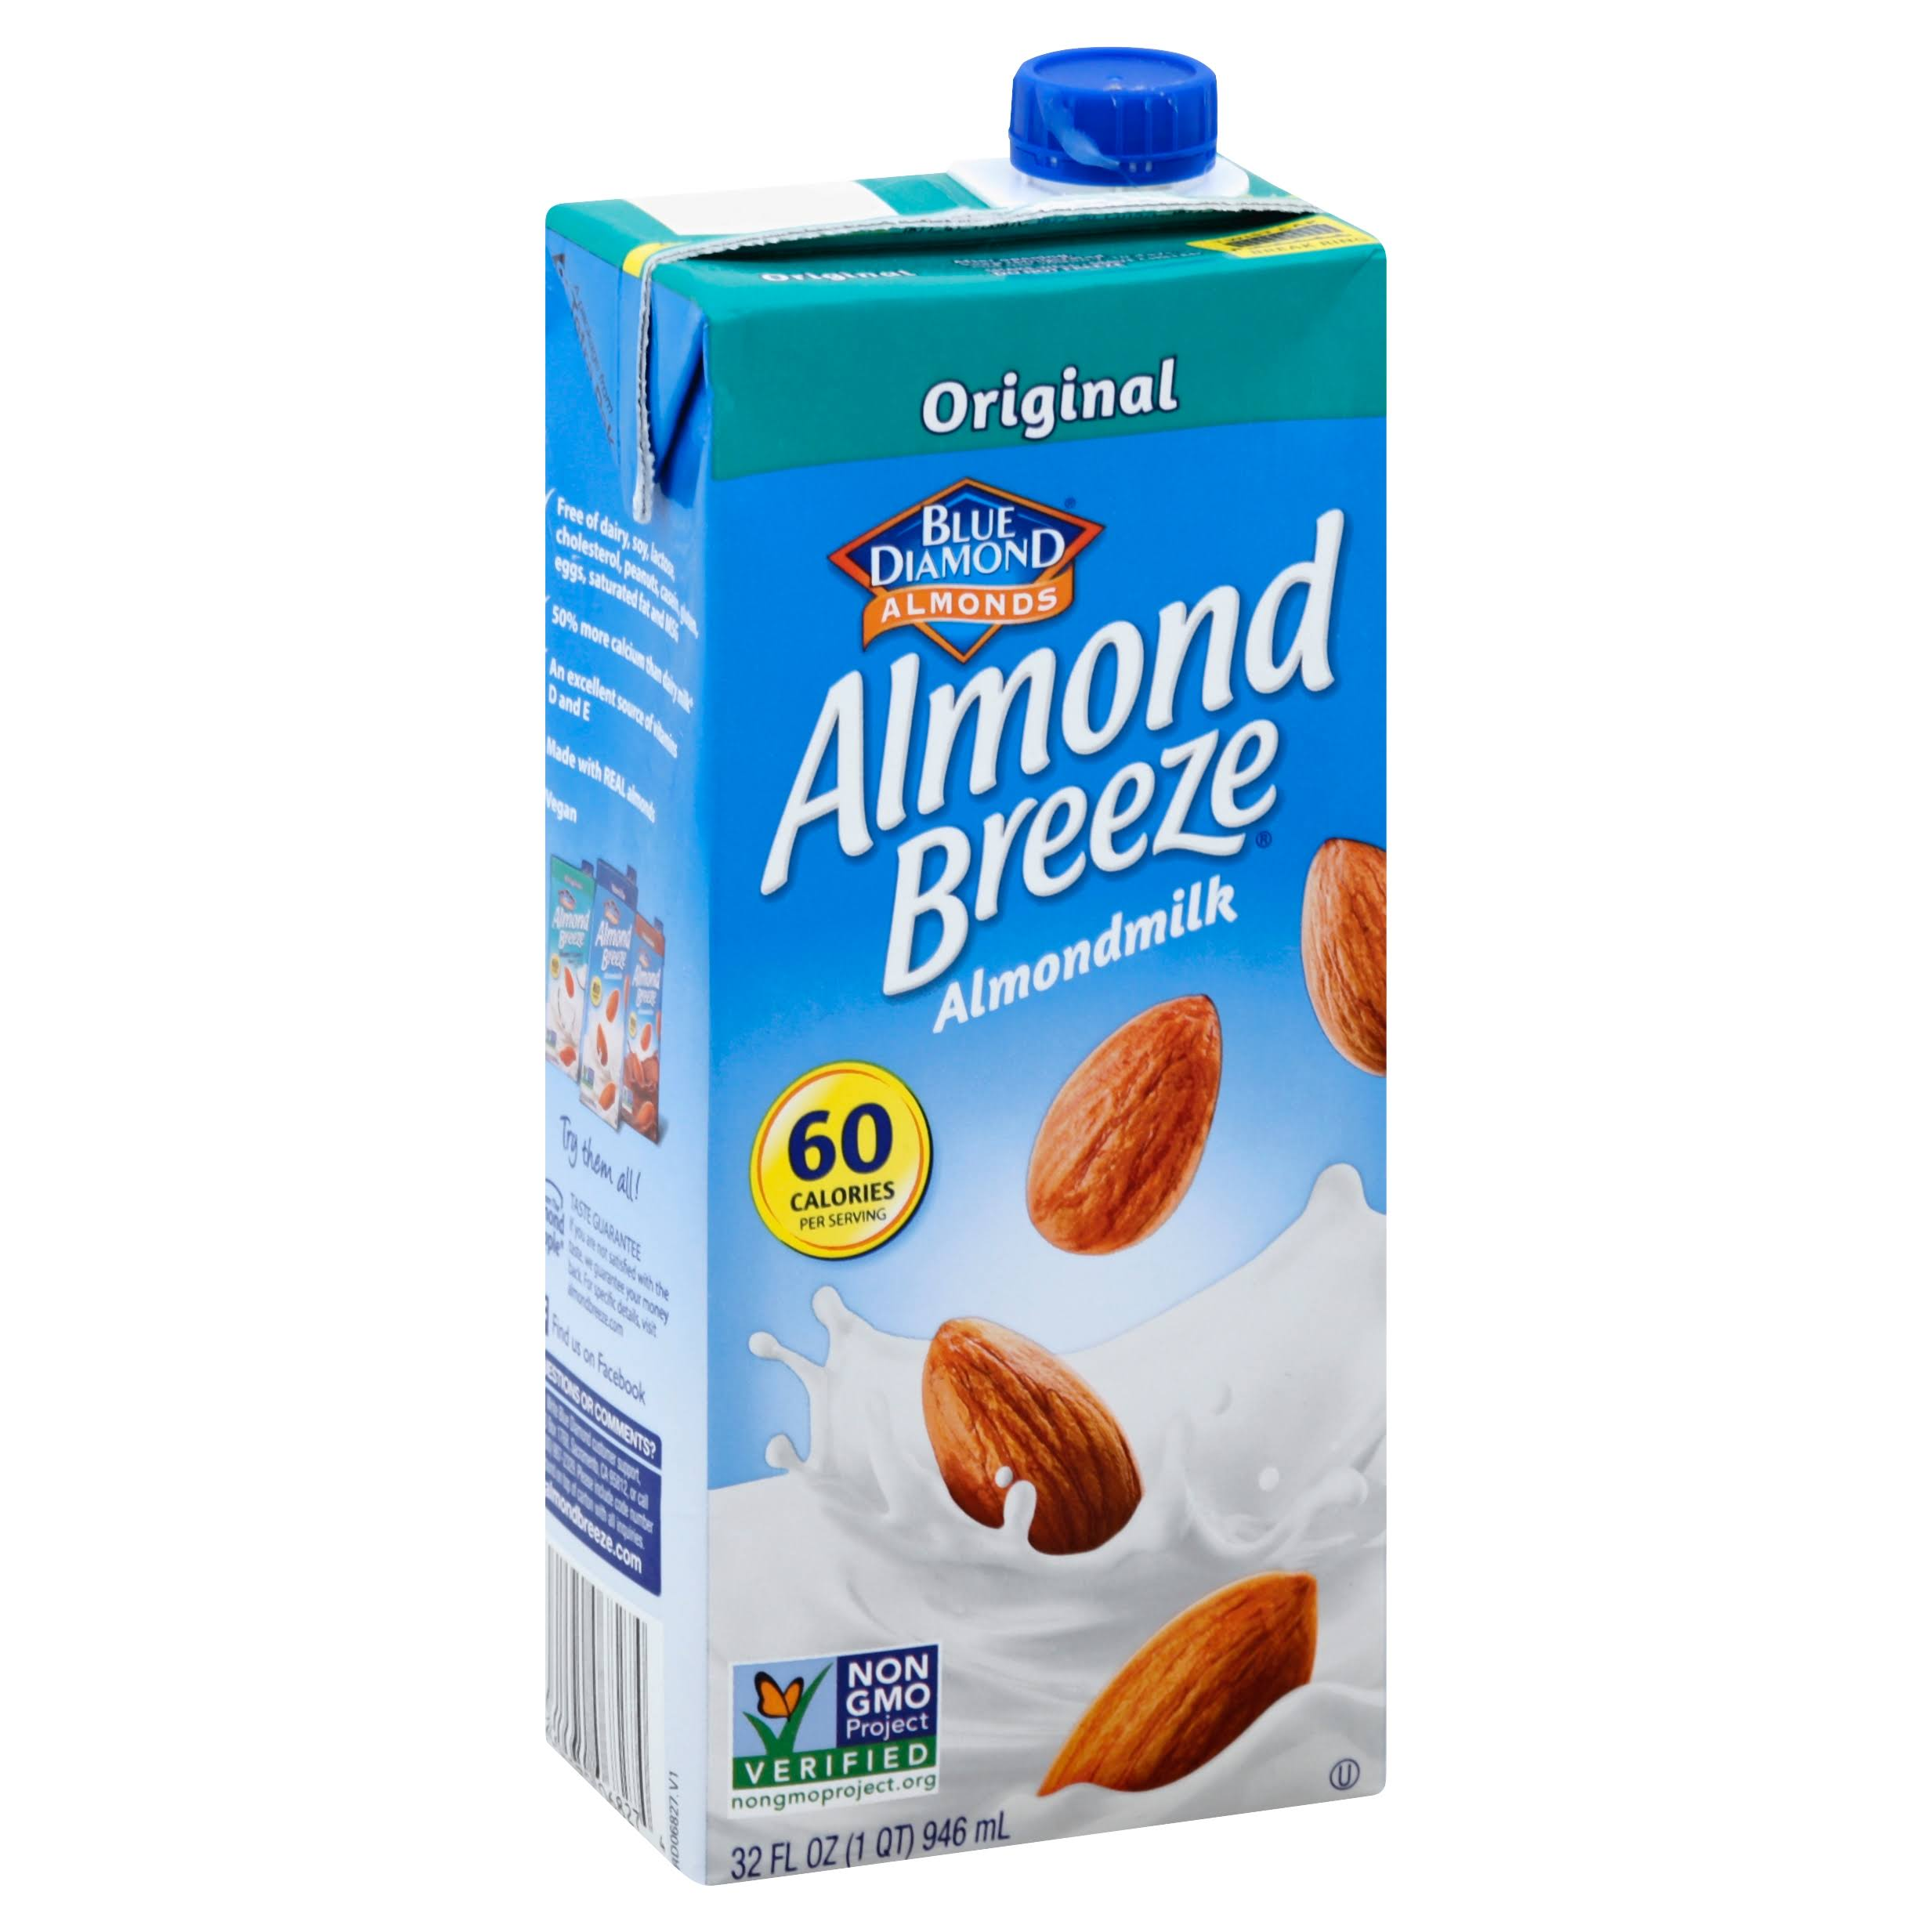 Blue Diamond Original Almond Breeze NonDairy Beverage - Original, 32oz